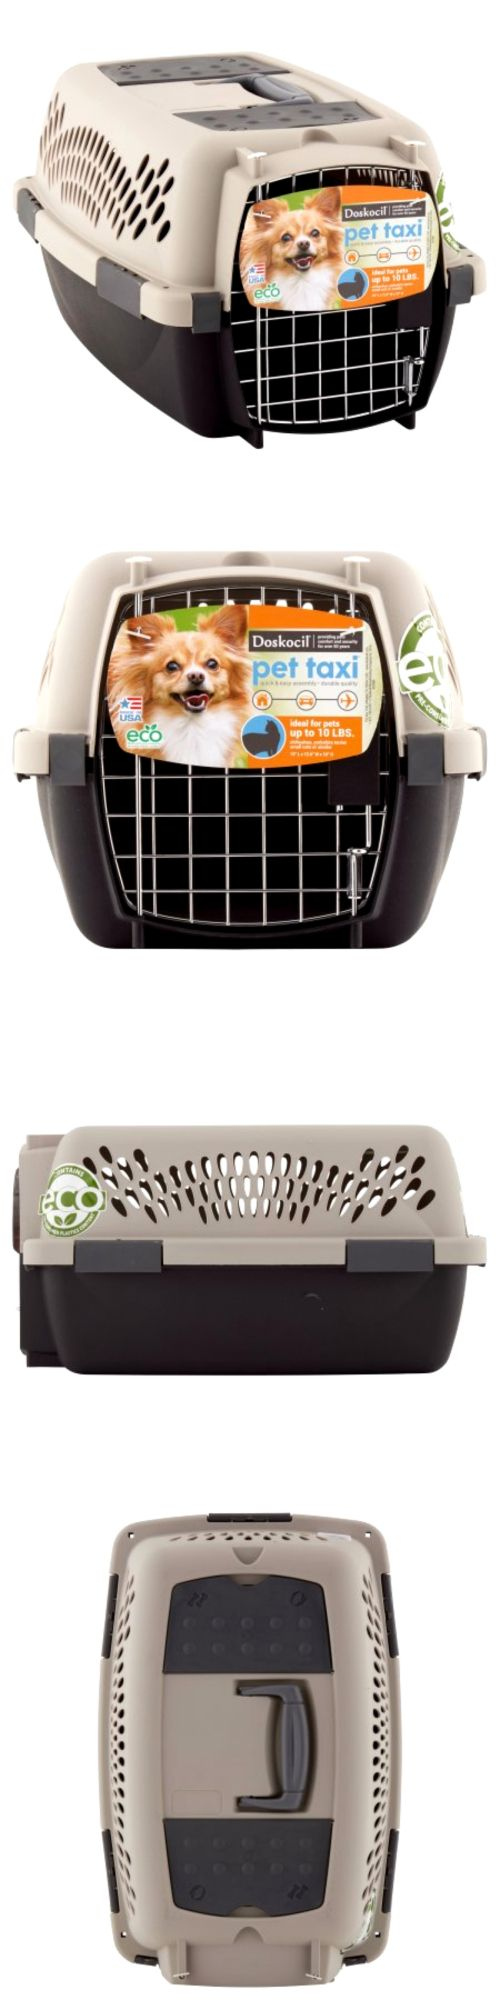 Carriers and Crates 26702: Small Dog Cat Puppy Carrier Kennel Transport Travel Cage 19 Pet Taxi Gray10lb -> BUY IT NOW ONLY: $32.34 on eBay!